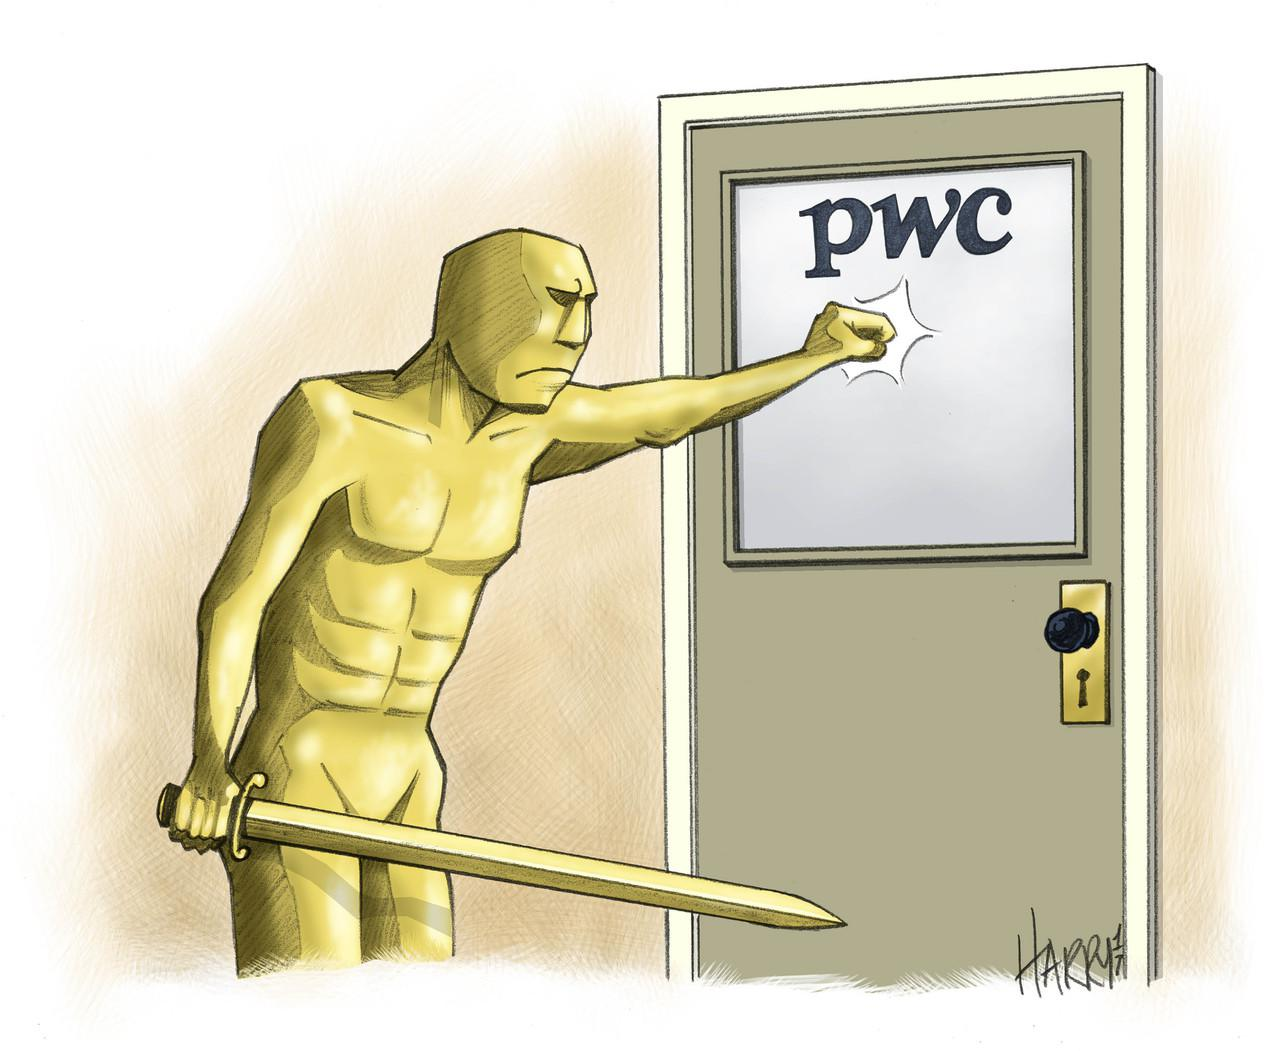 PwC partners banned after Oscars fiasco